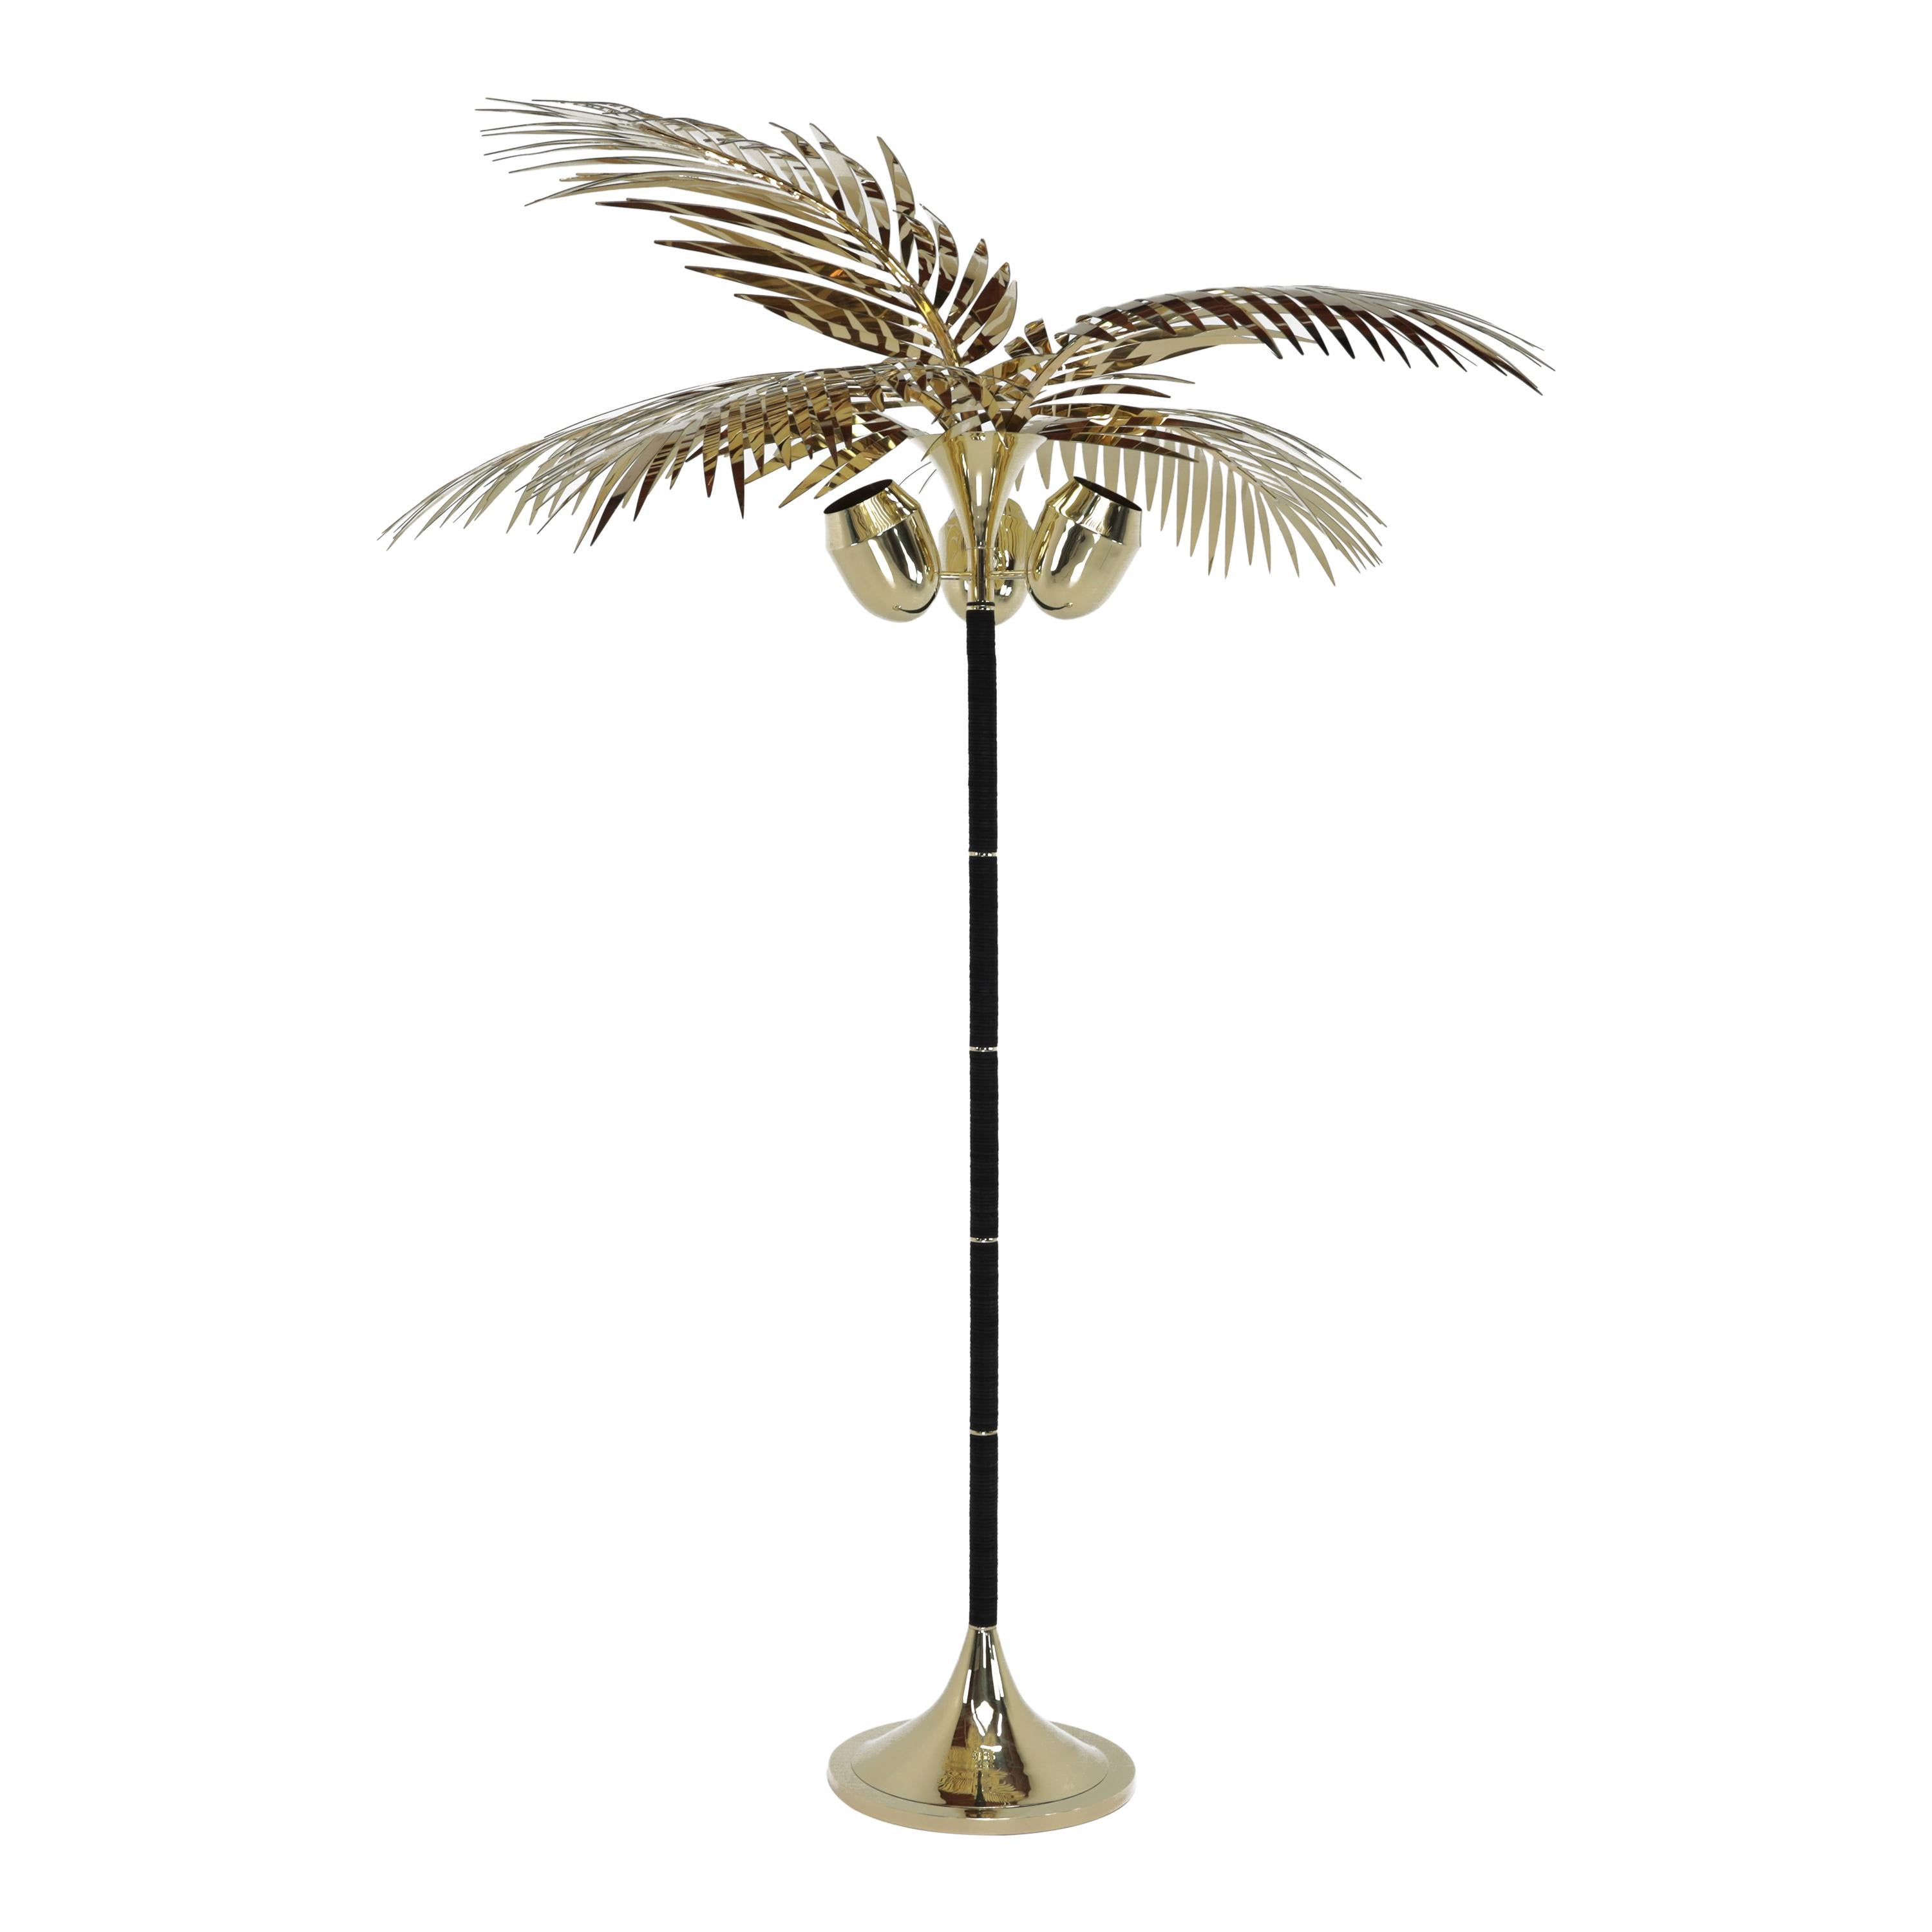 Royal Palm Tree Floor Lamp in brass and Leather by Christopher Kreiling Studio